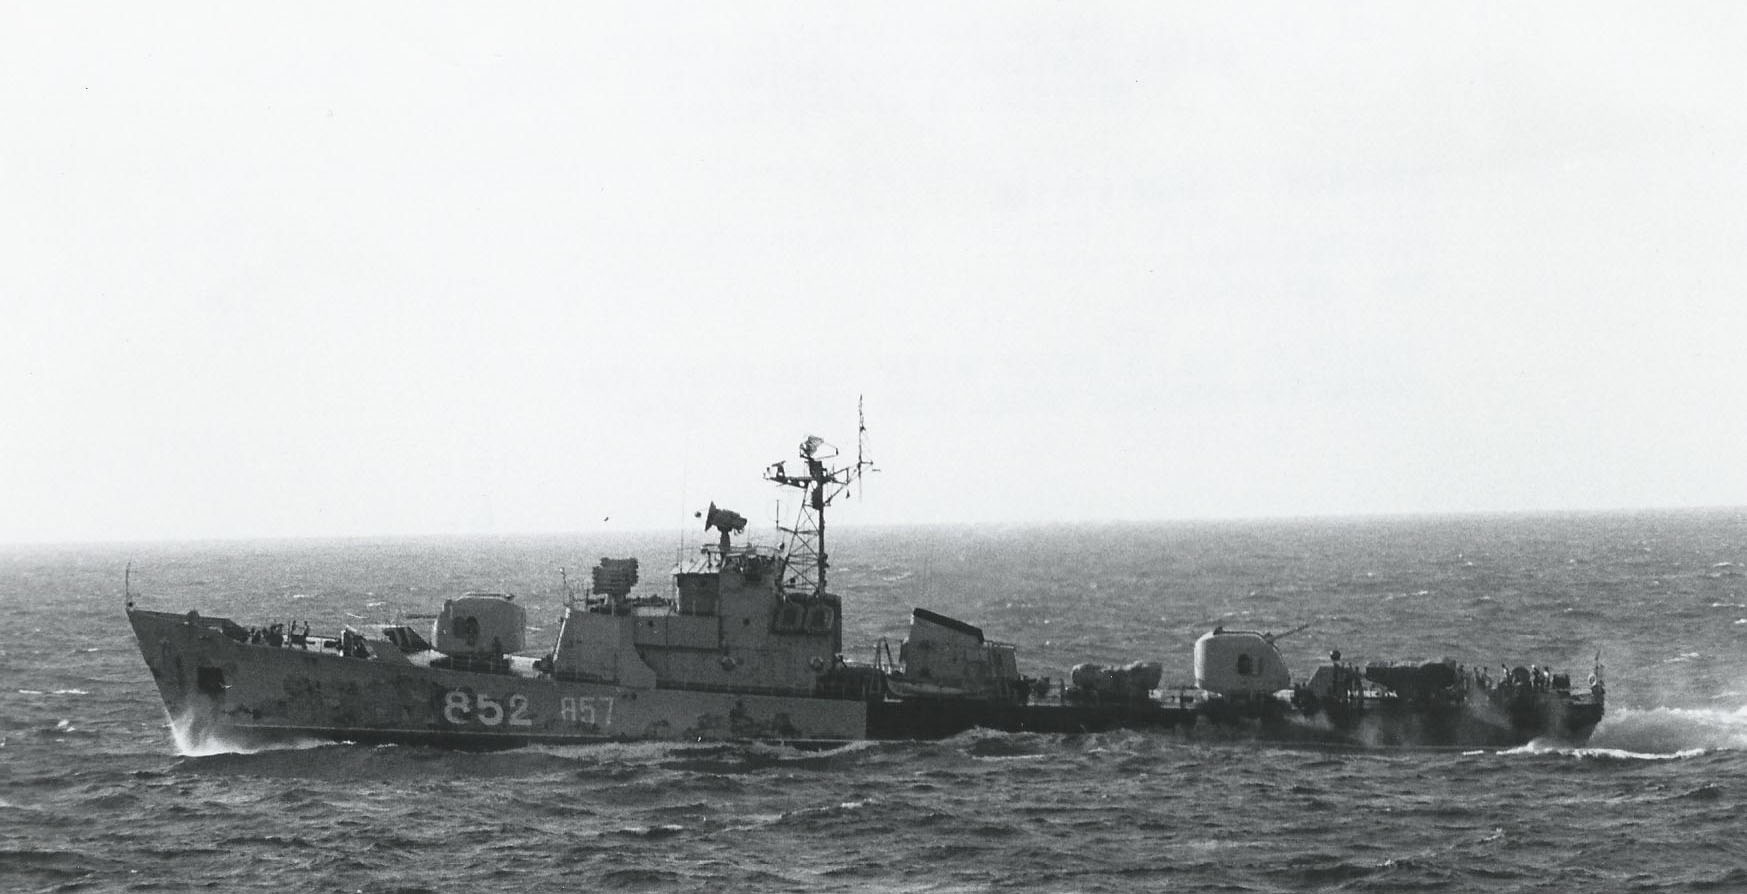 The Taiwanese Navy Accepted Two Old Warships From Its Ally The United States To Defend Itself From China